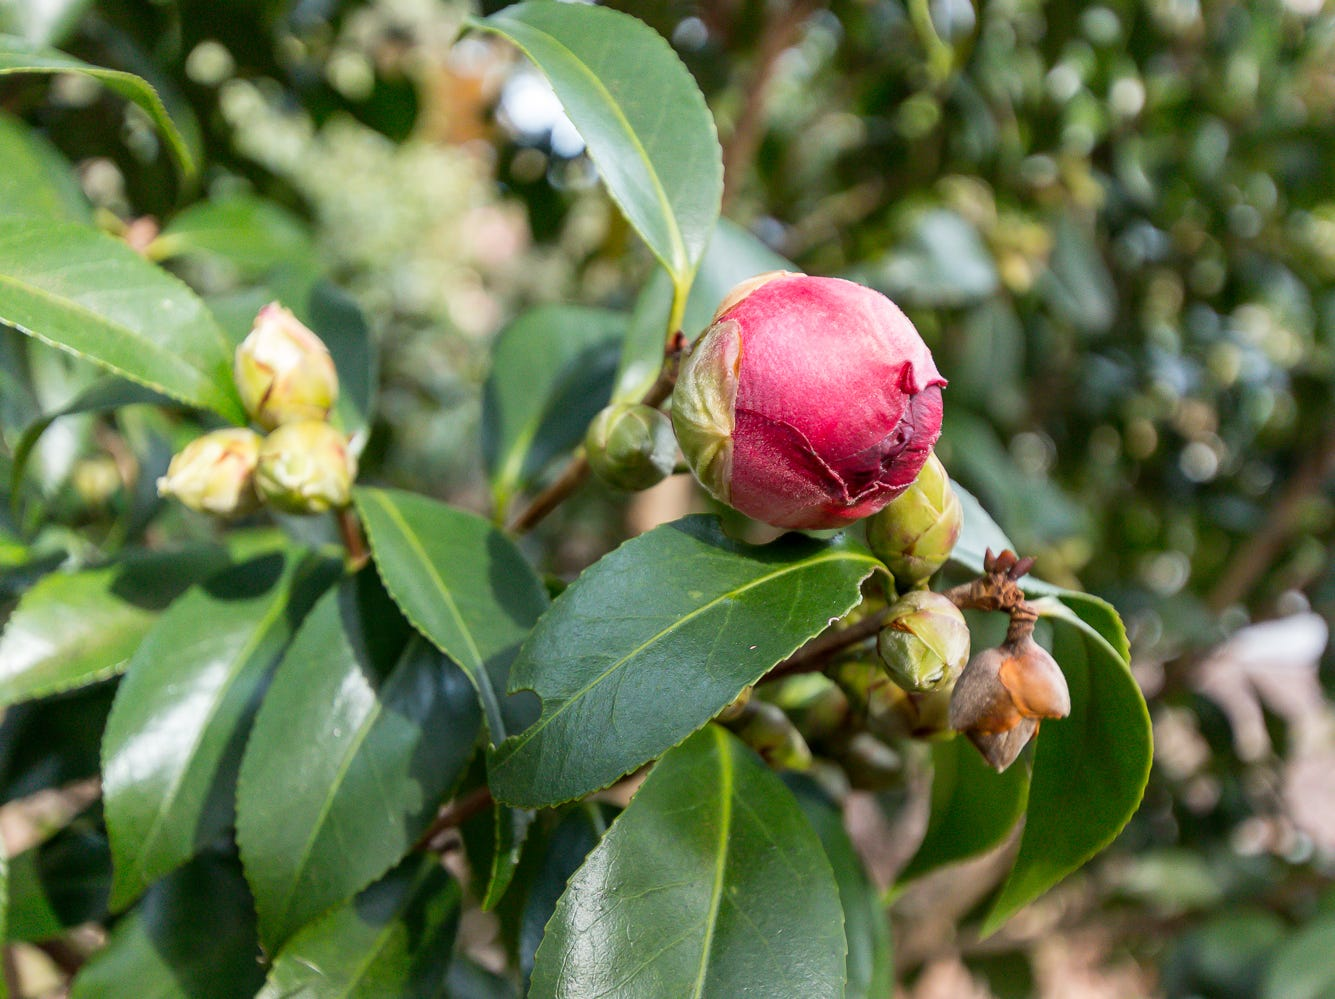 A blooming Midnight Magic camellia is on display in the University of West Florida's Camellia Garden on Wednesday, November 28, 2018. The garden is located just east of Building 41 for Pyschology and Behavioral Sciences.